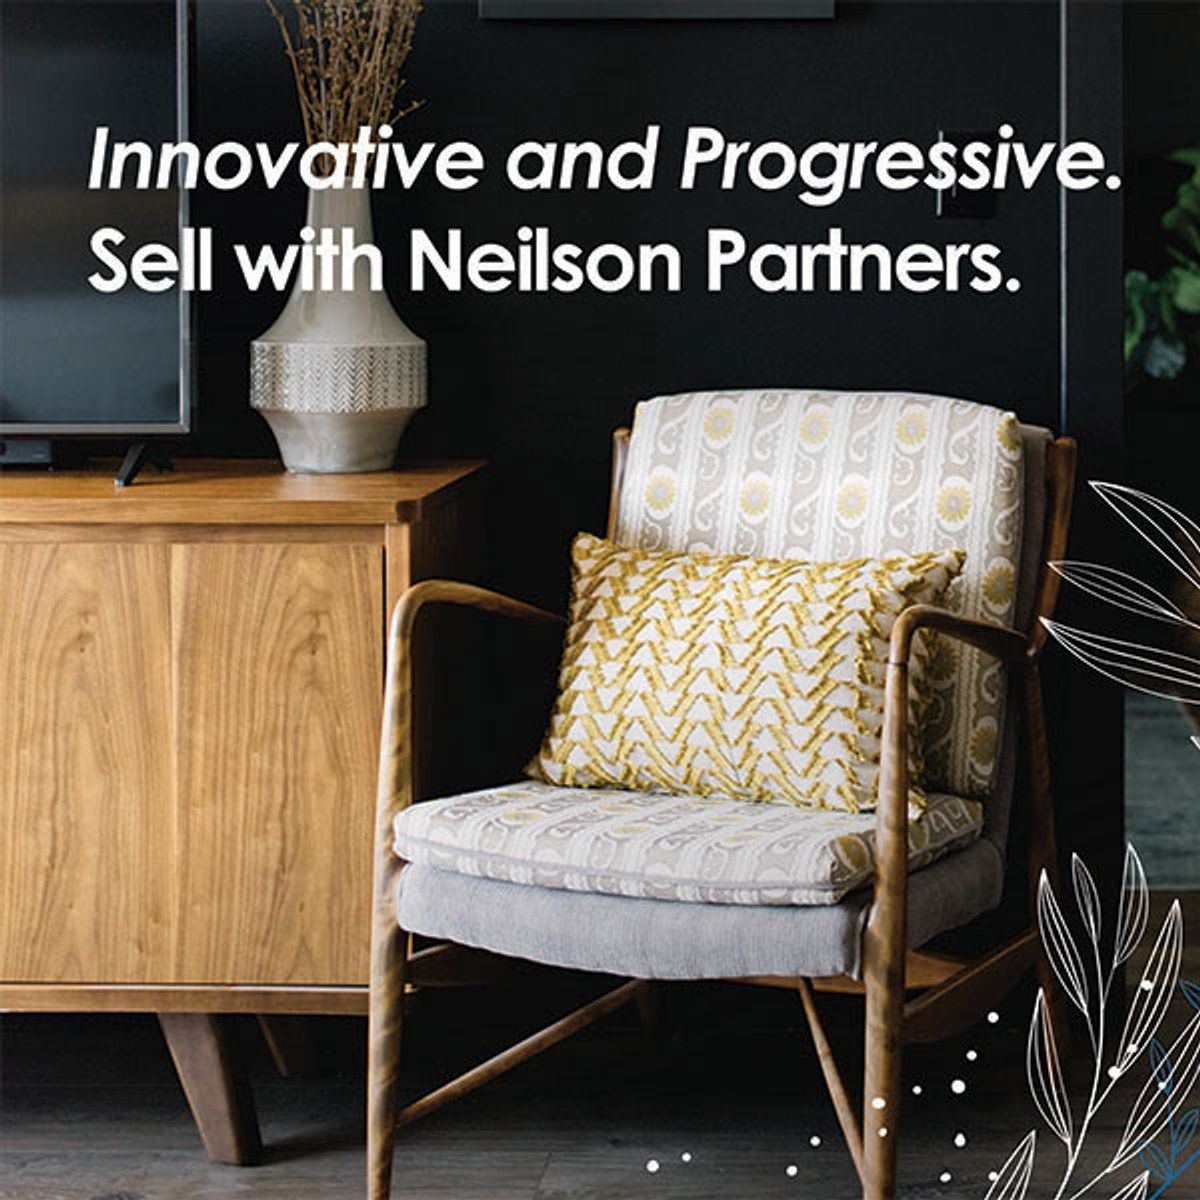 Innovative and progressive_Sell with Neilson Partners